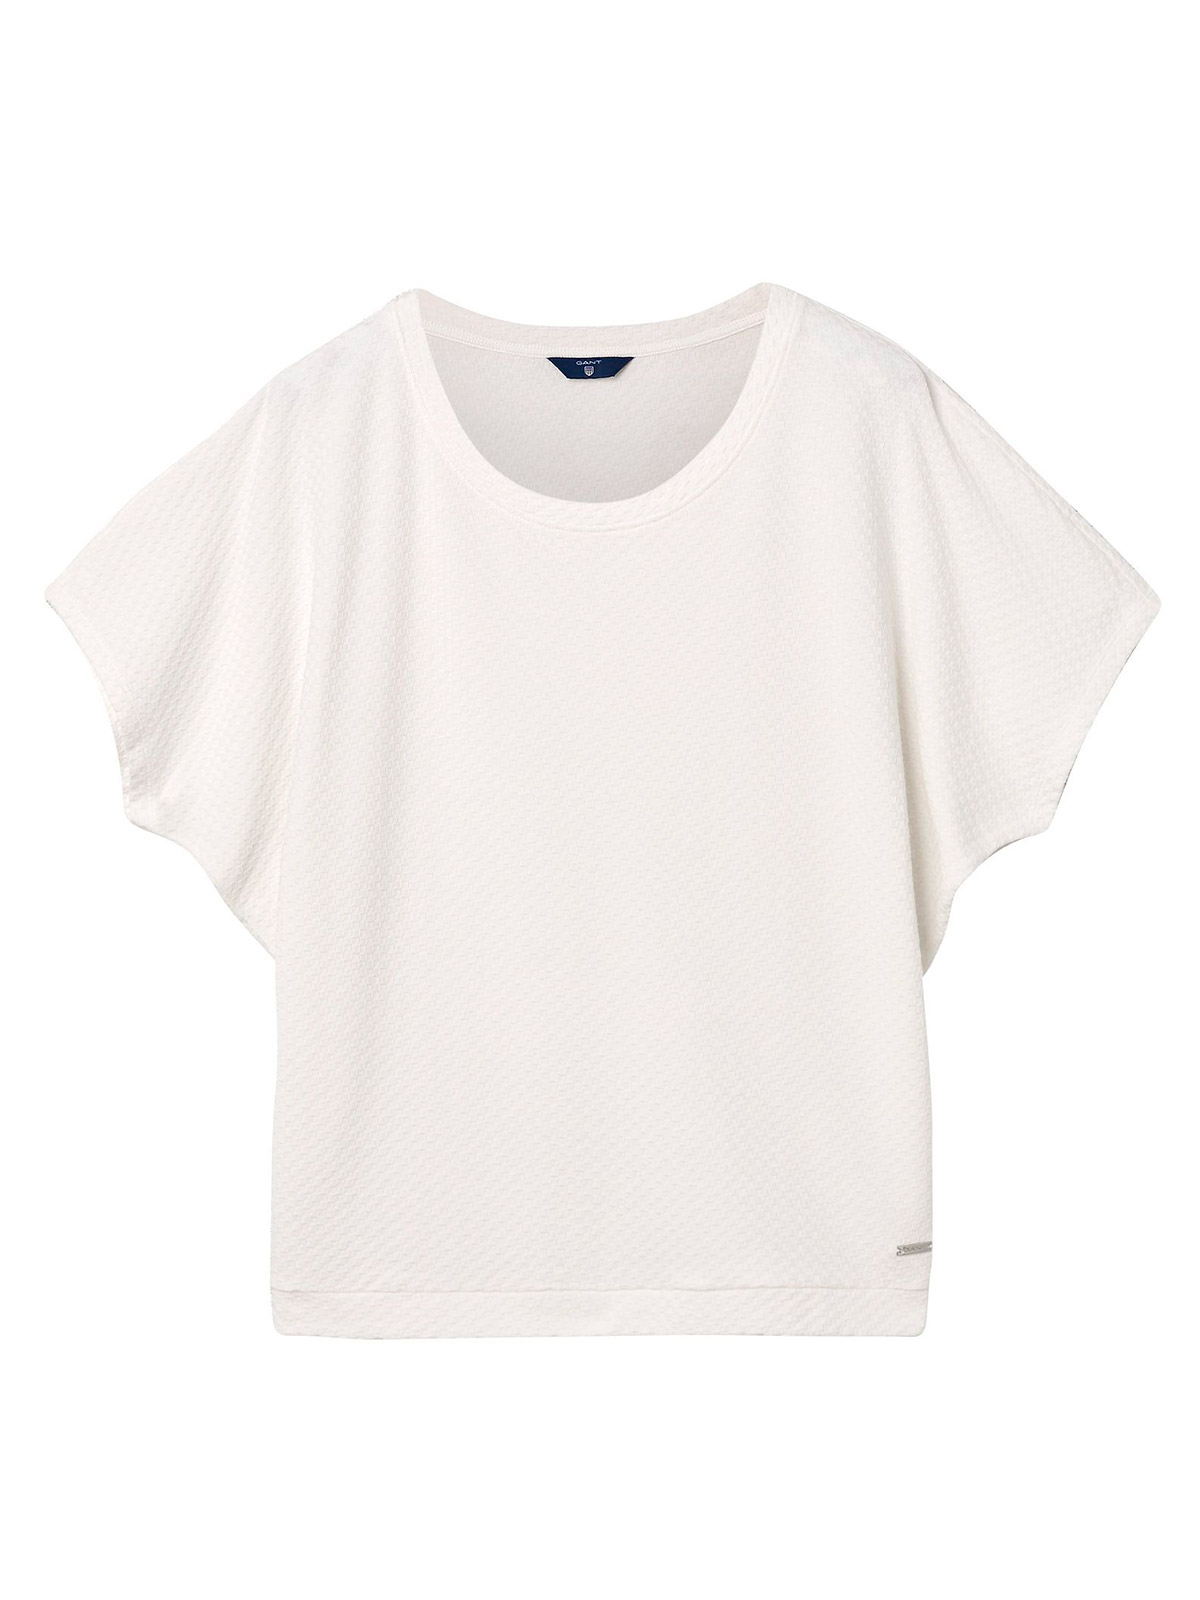 Picture of GANT | Women's Square Top